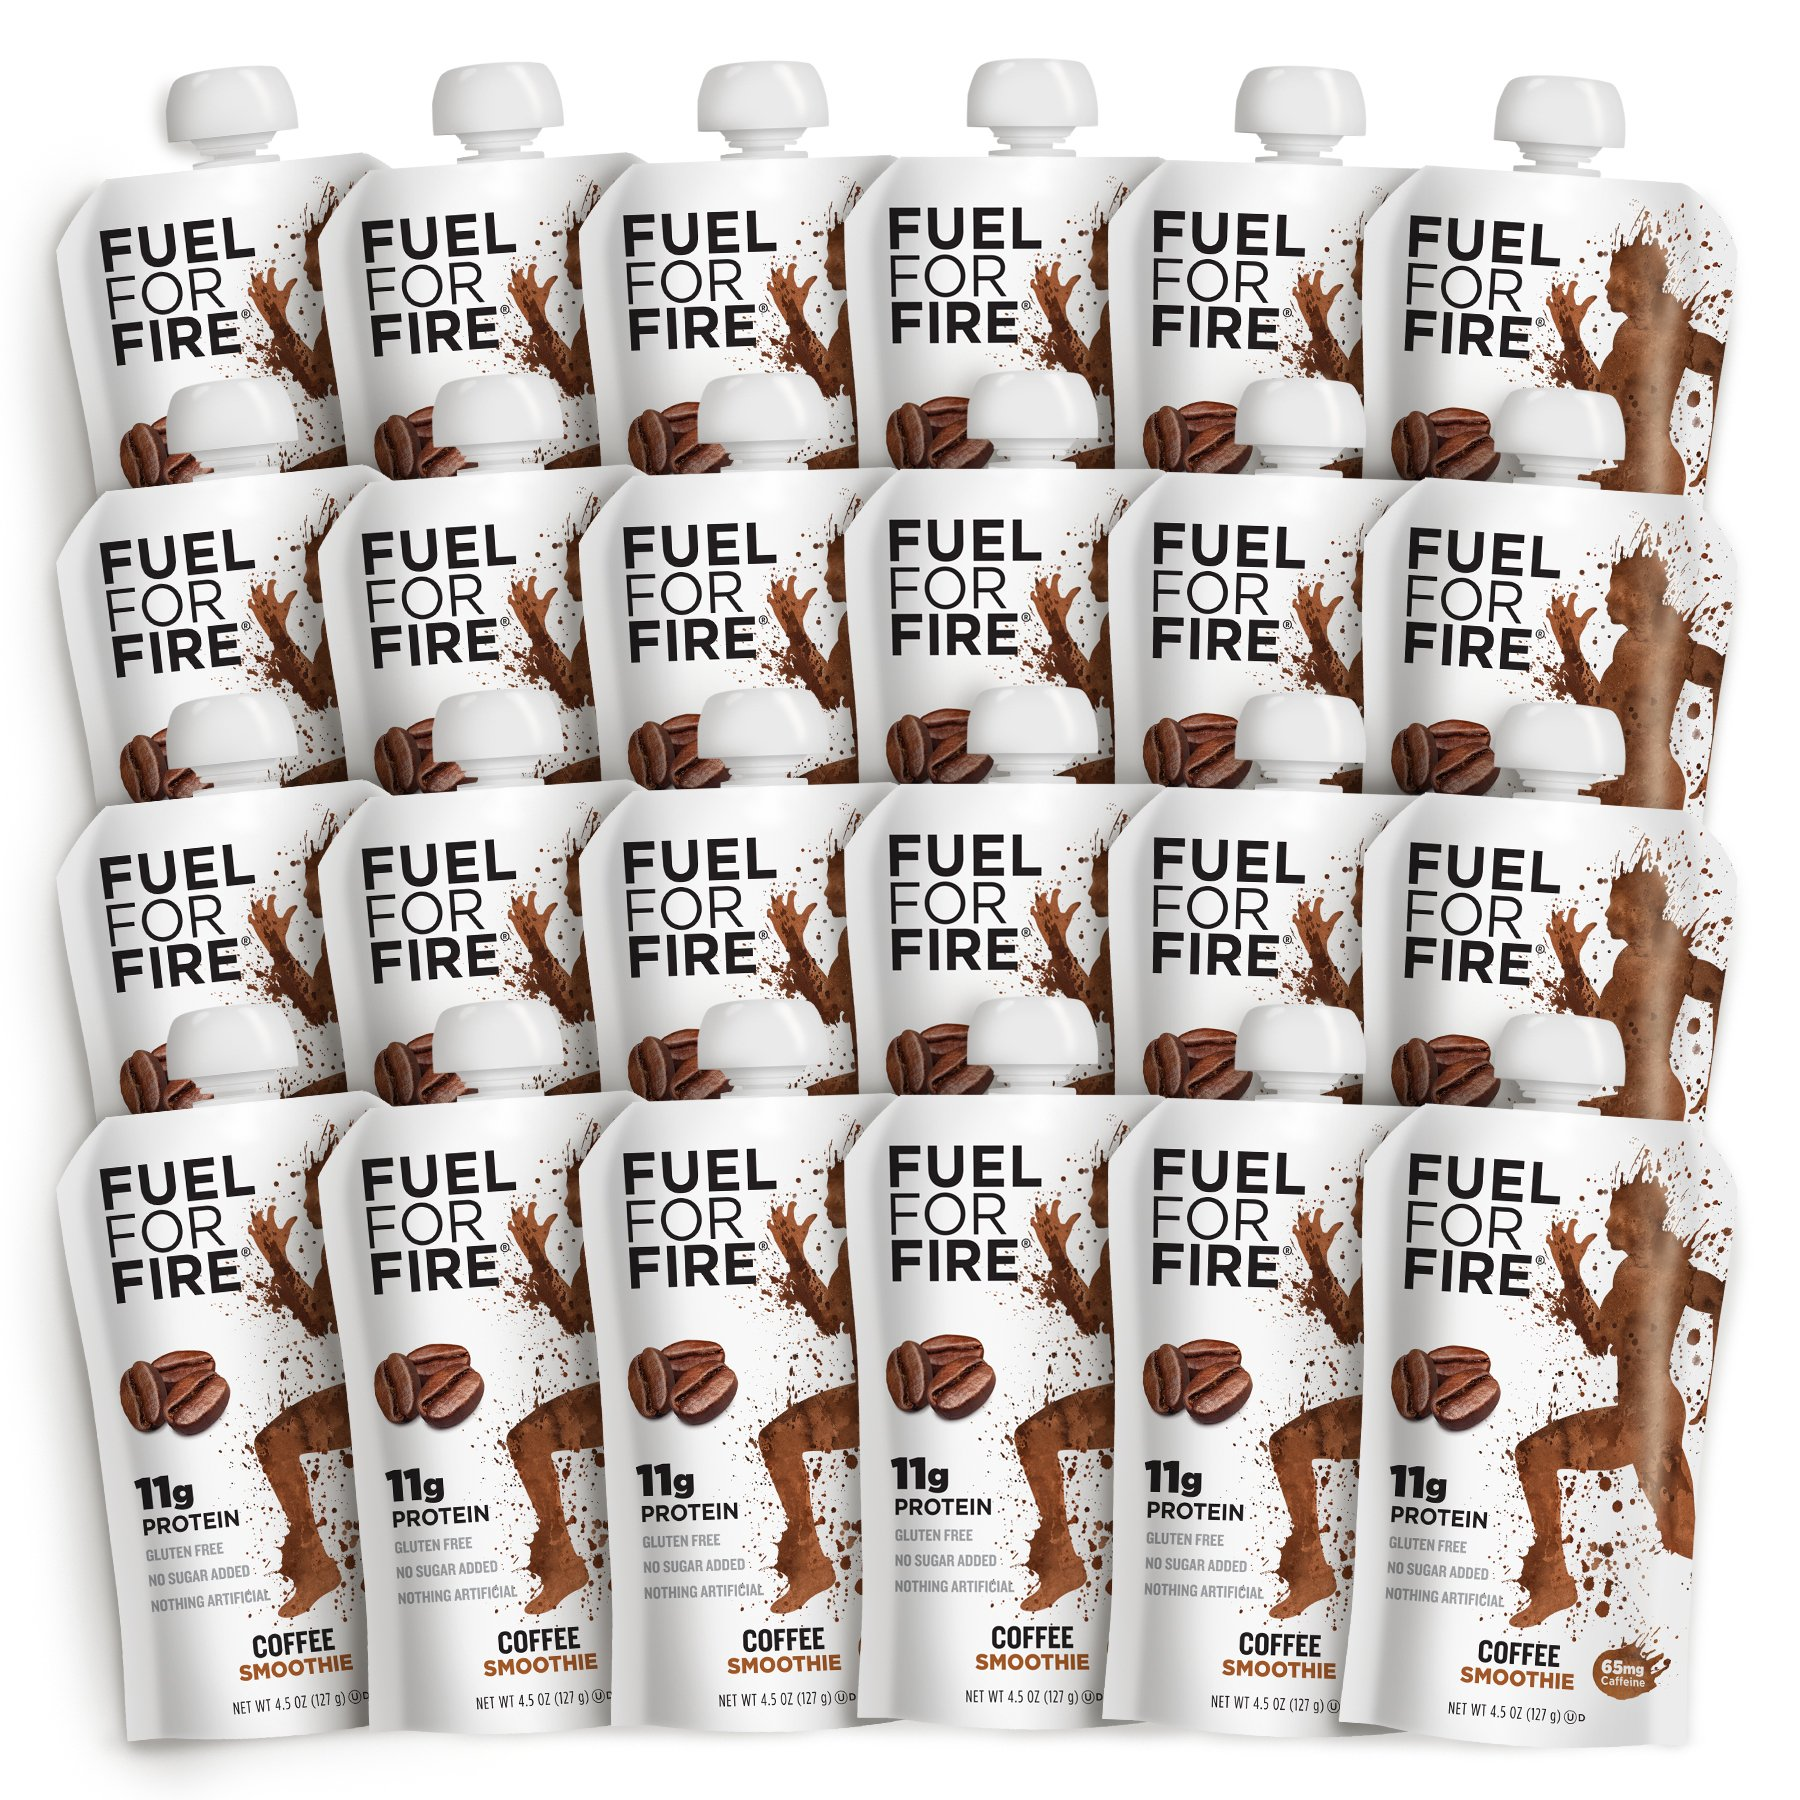 Fuel For Fire - Coffee (24 Pack) Fruit & Protein Smoothie Squeeze Pouch | Perfect for Workouts, Kids, Snacking - Gluten-Free, Soy-Free, Kosher (4.5 ounce pouches) by FUEL FOR FIRE